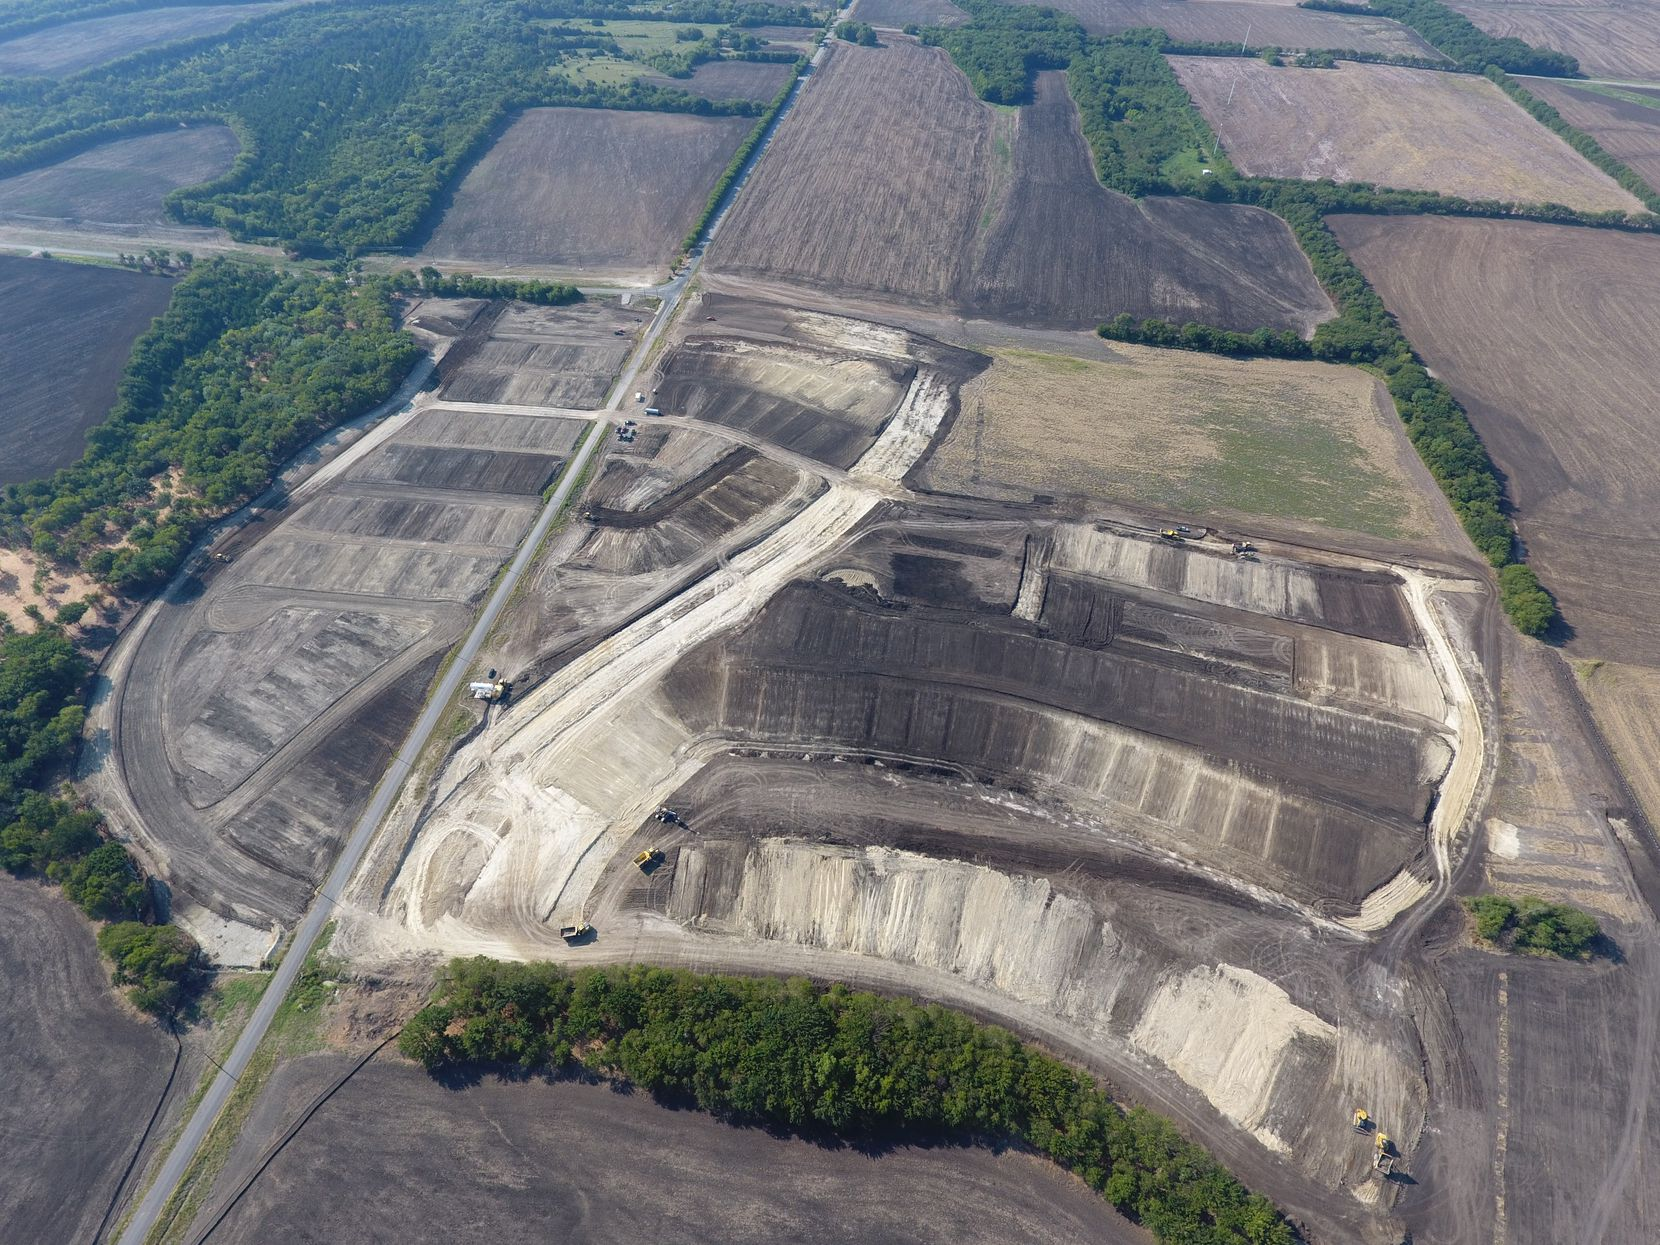 Construction has started on the almost 3,000-acre Mantua development.